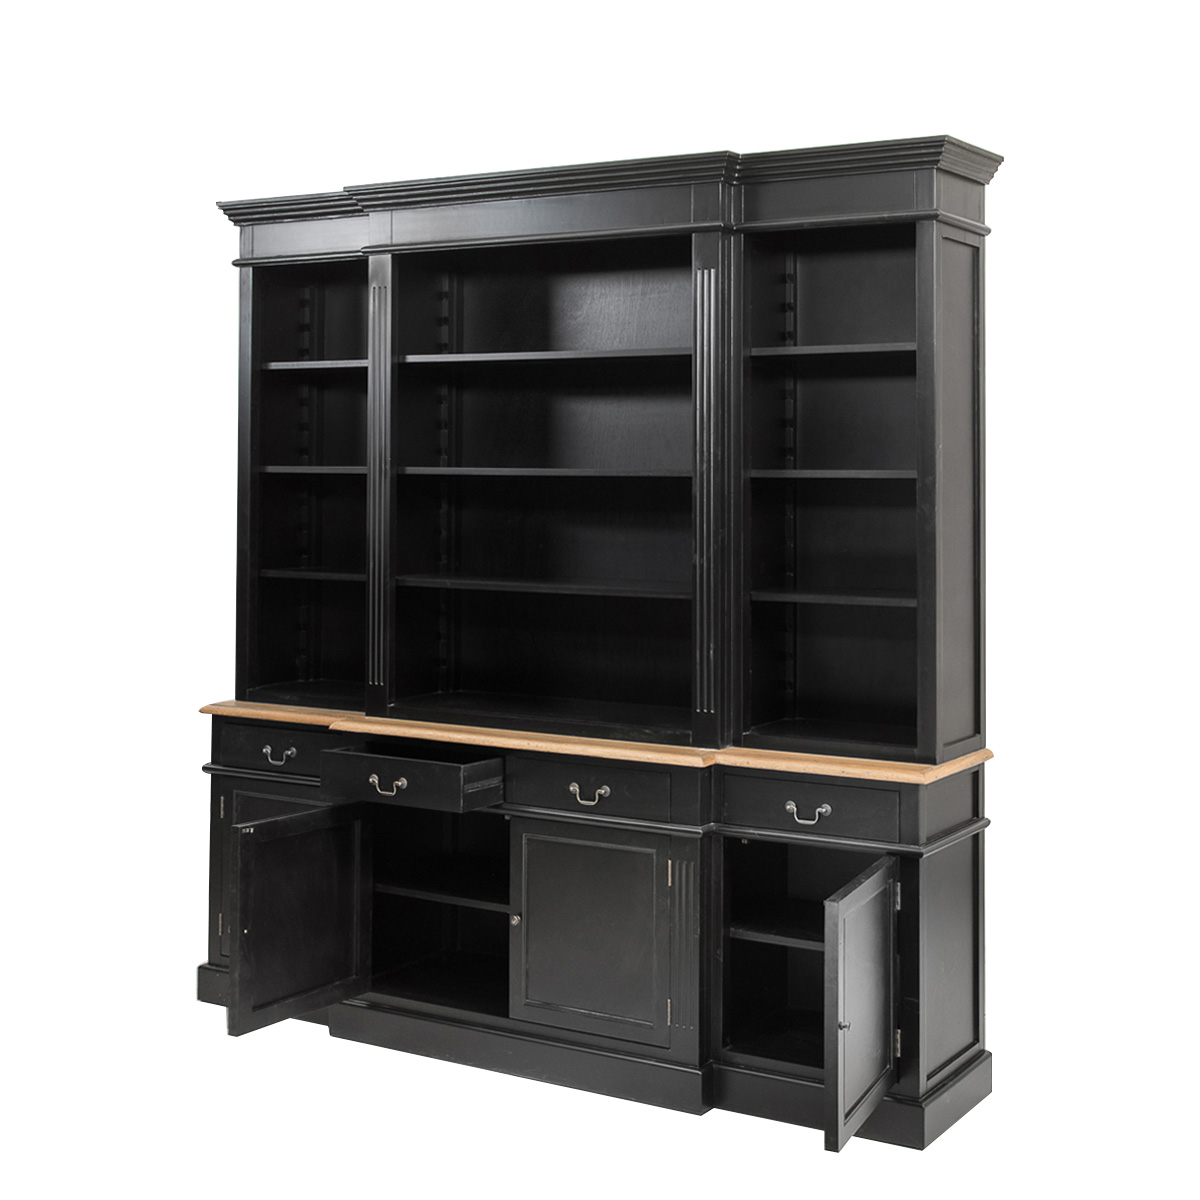 French Provincial Furniture Bookcase Cabinet Black Ebay